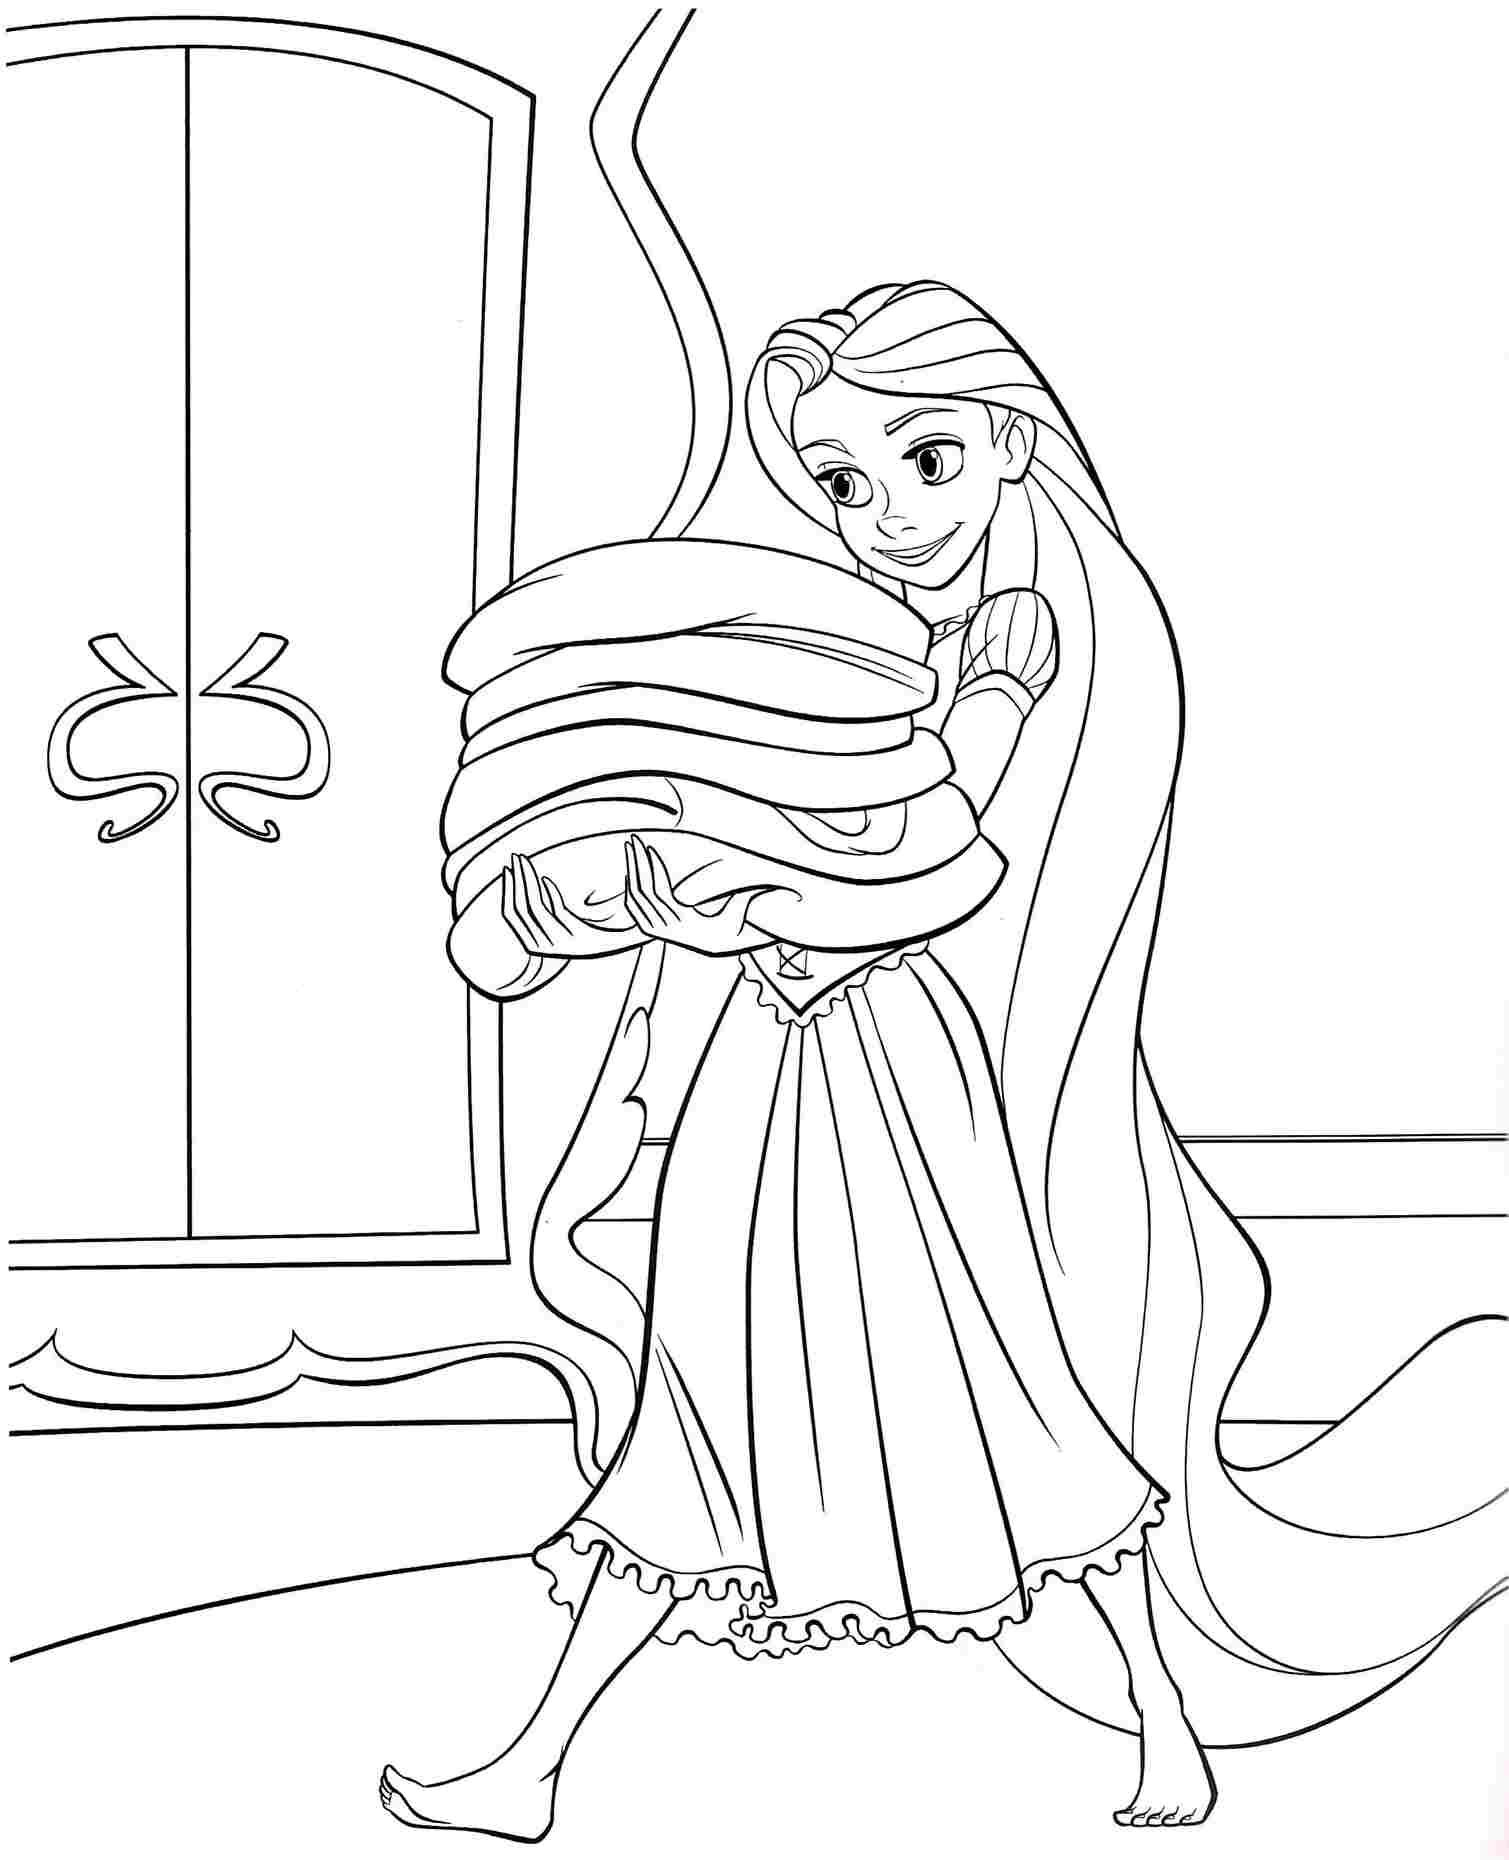 coloring pages disney princess tangled rapunzel free for kids